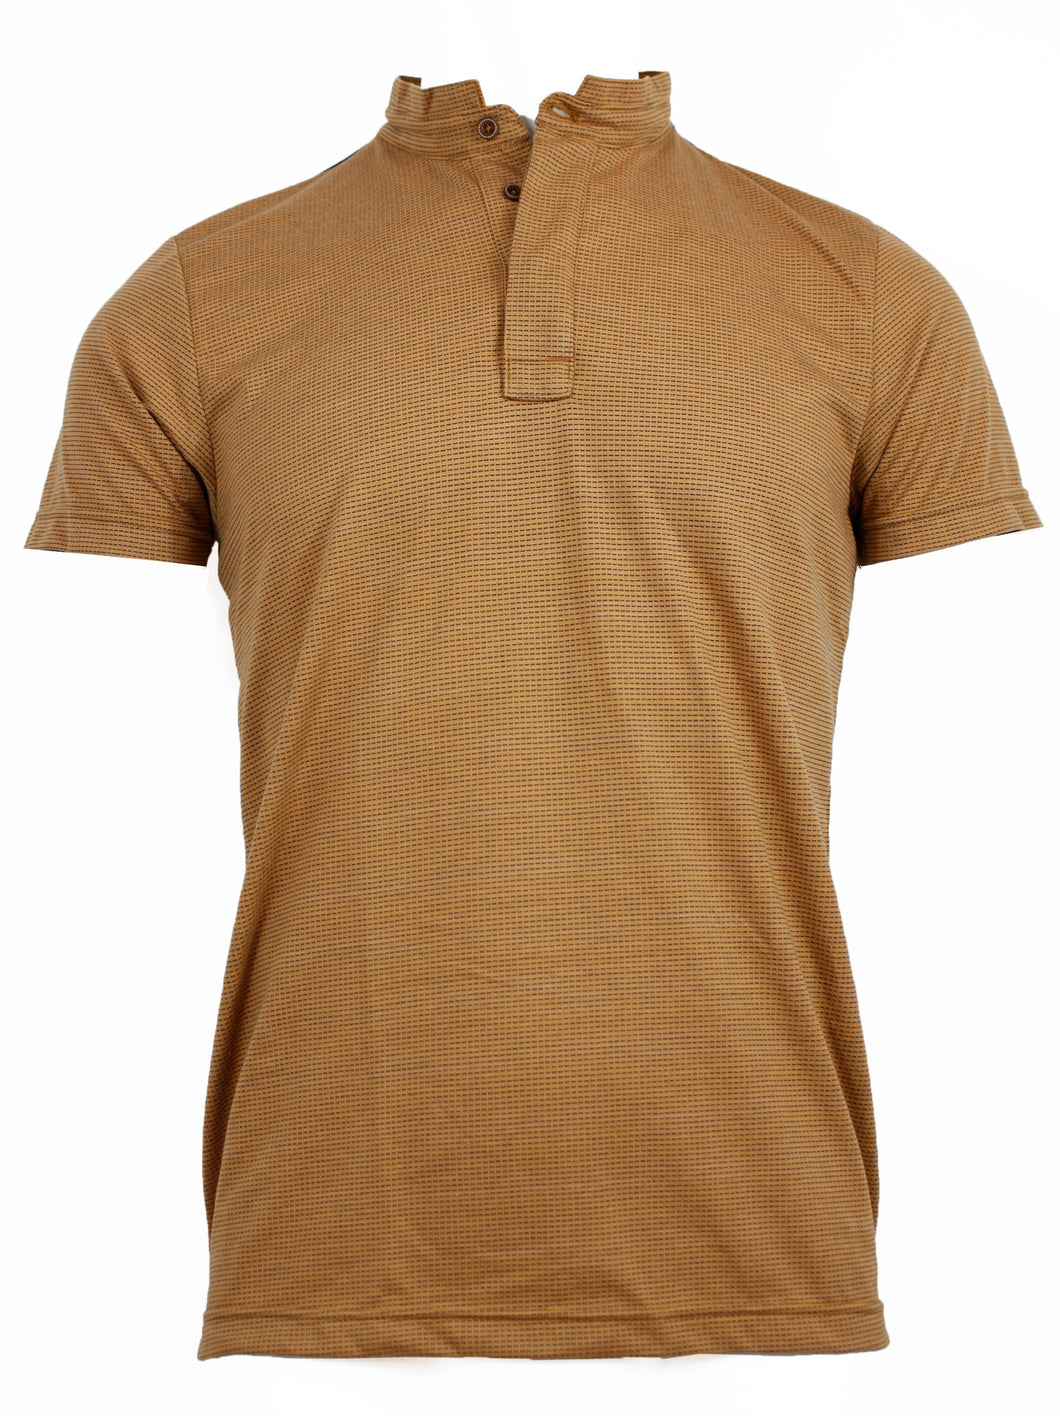 Playera Polo Mostaza